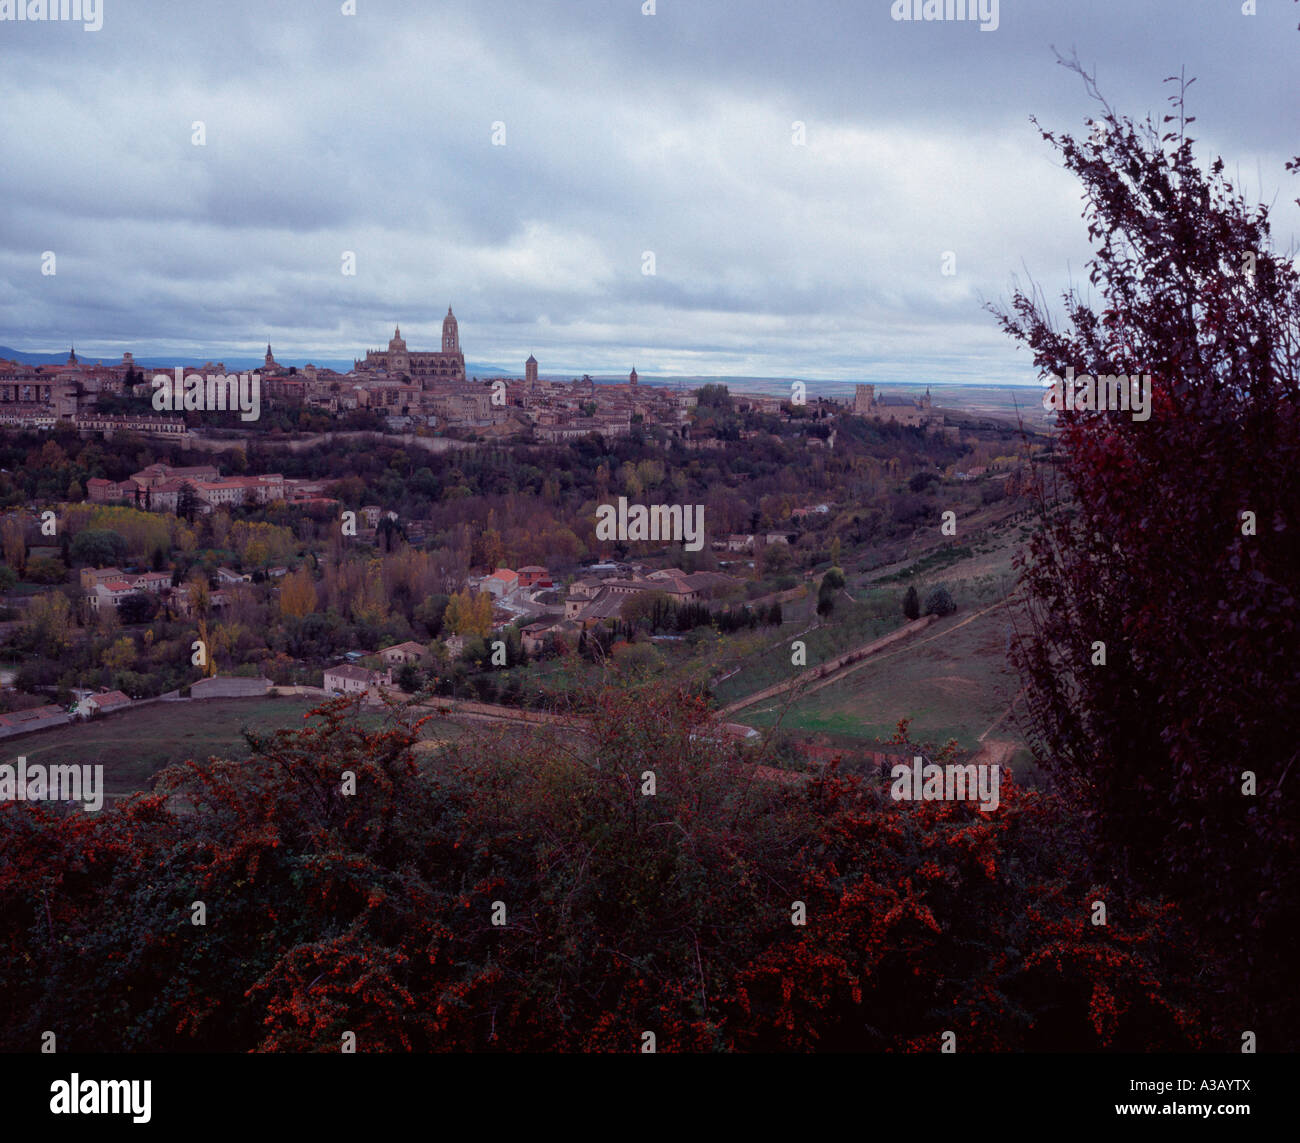 View over the Segovian countryside and Castillian plain from the Parador, Segovia, Spain Stock Photo